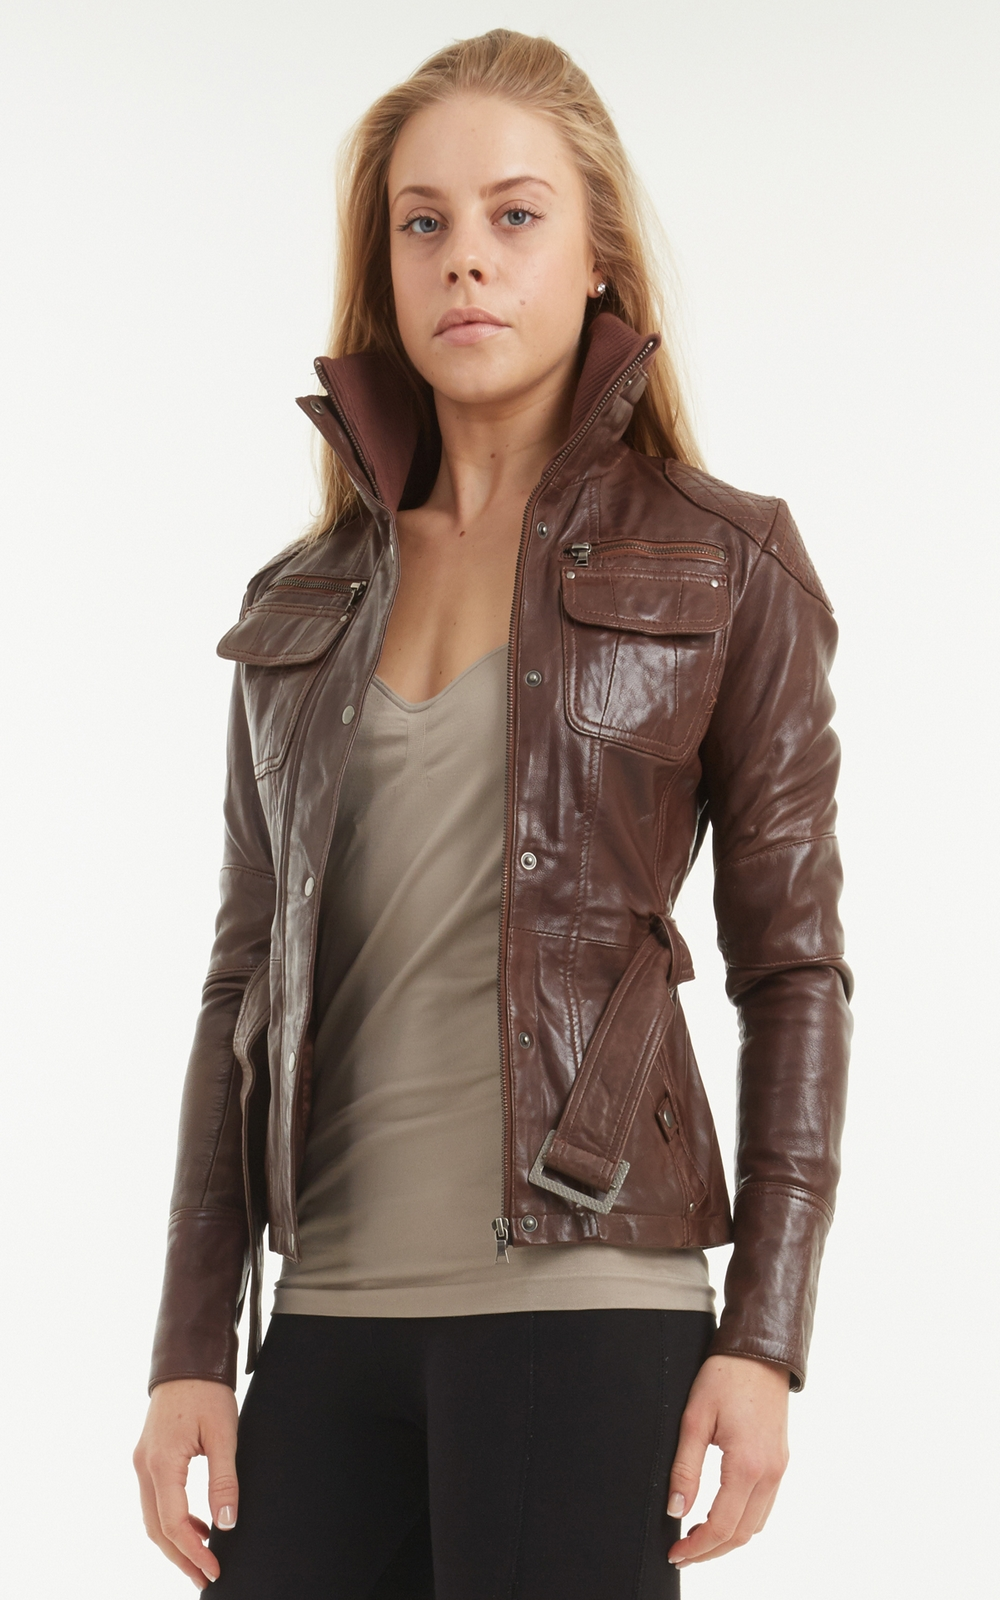 Women's brown leather biker jacket – Modern fashion jacket photo blog